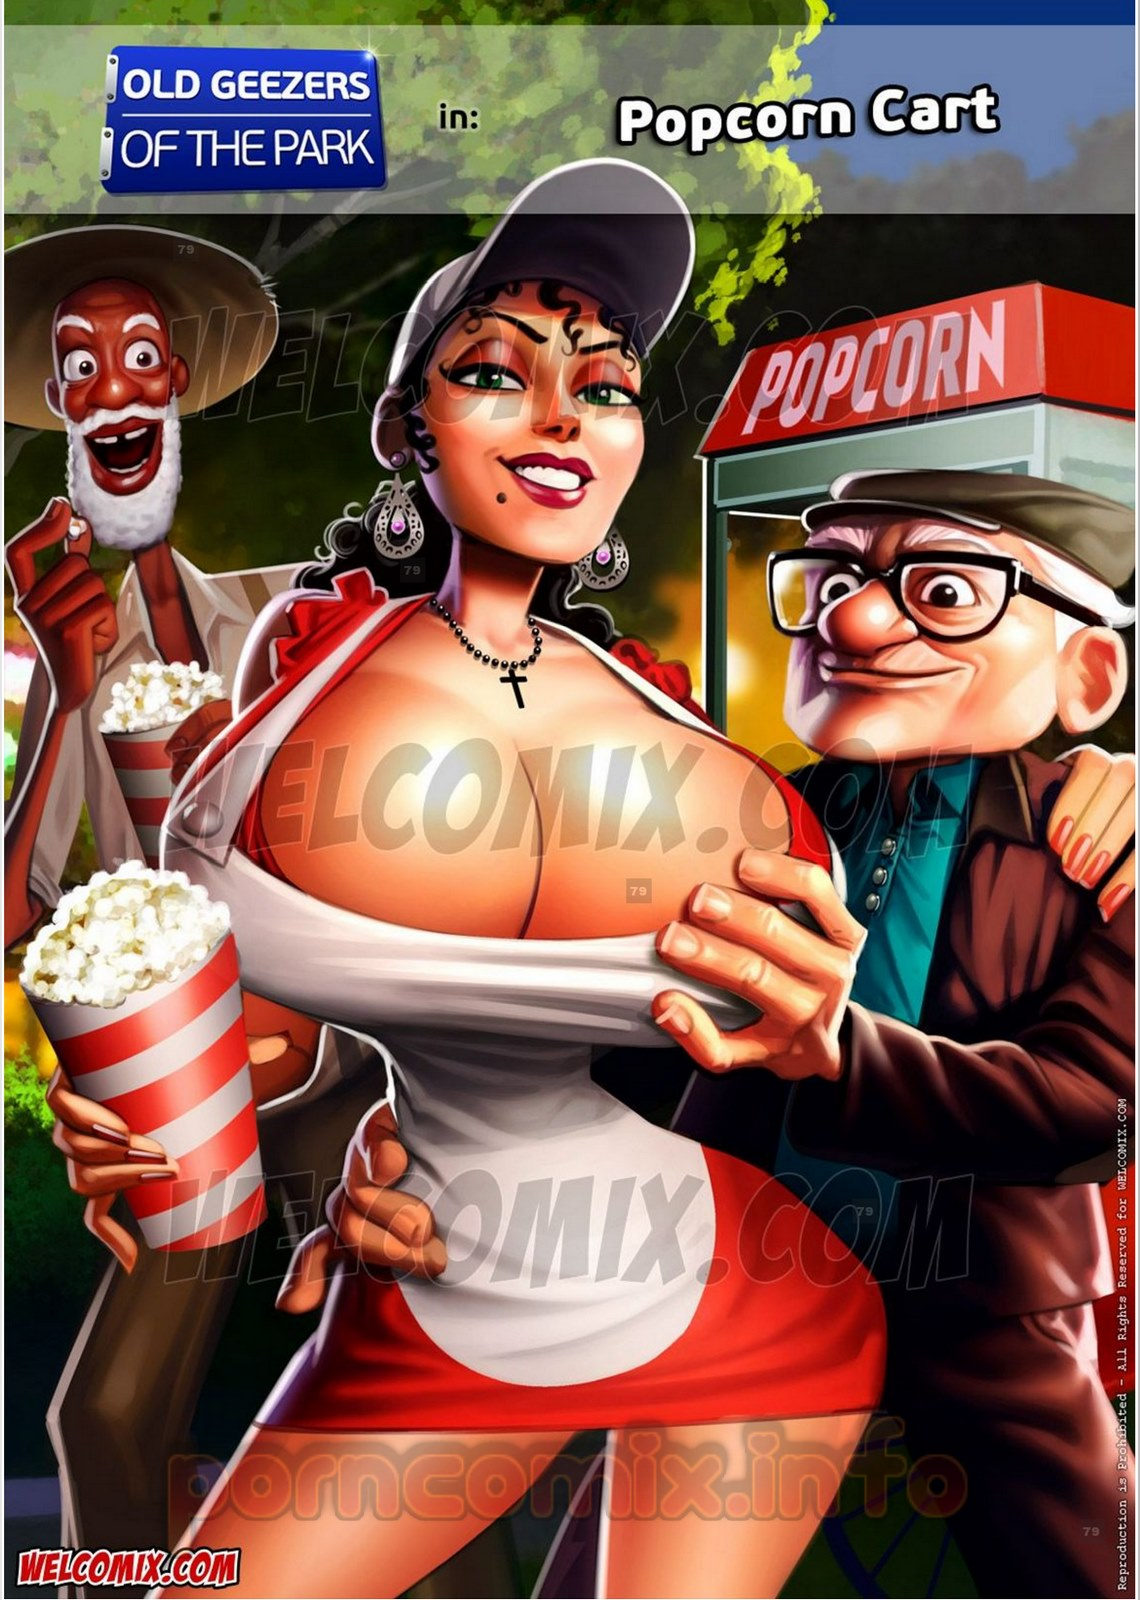 Old Geezers of Parks- Popcorn Cart porn comics 8 muses